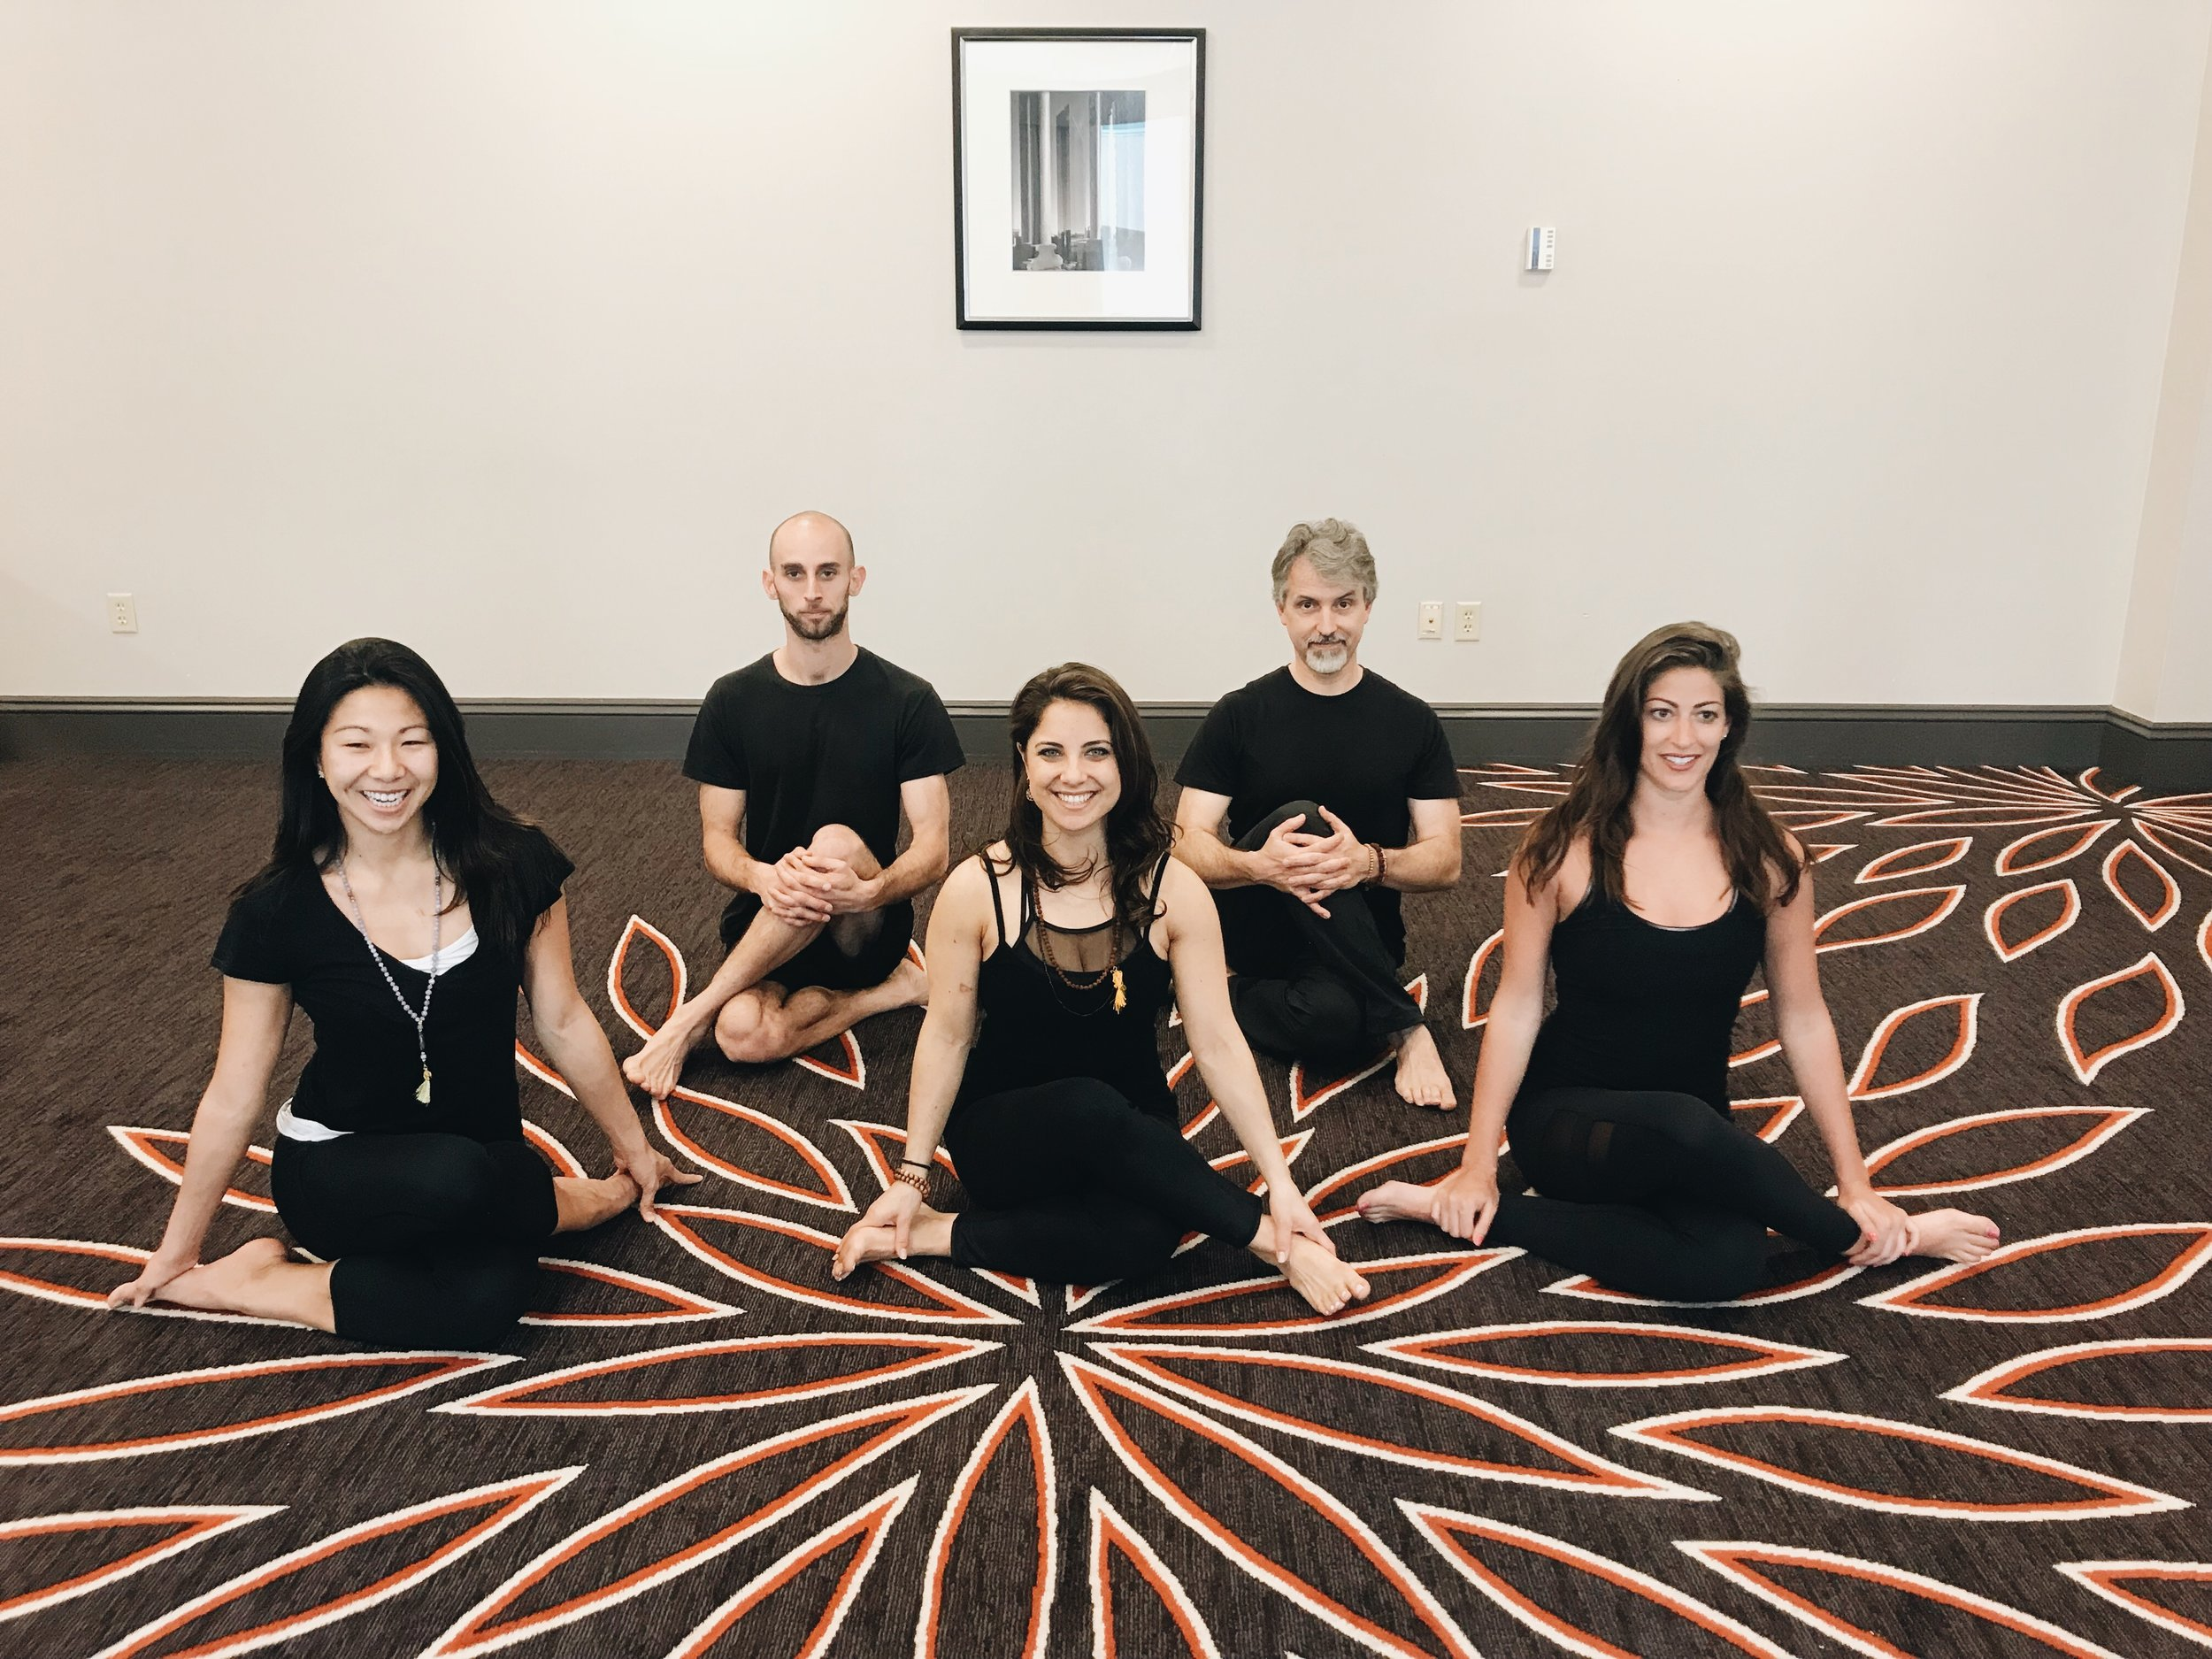 """Founded by ONE, open to ALL."" - YogaHub is Boston's yoga network, which provides professional development and ongoing education for instructors, as well as corporate wellness services for organizations."